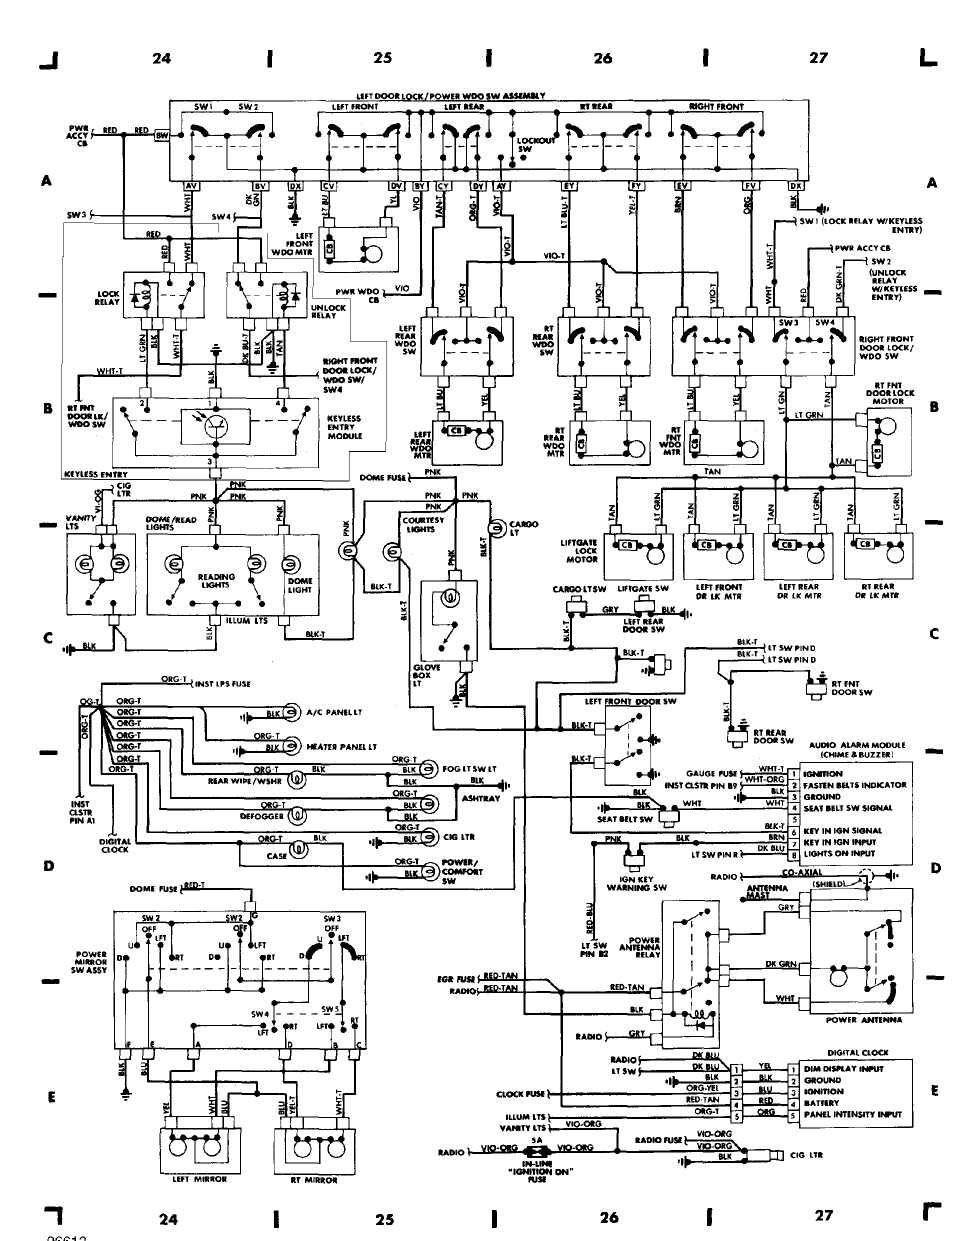 wiring_diagrams_html_61f5e0ad wiring diagrams 1984 1991 jeep cherokee (xj) jeep 1989 jeep wrangler fuse box diagram at mifinder.co